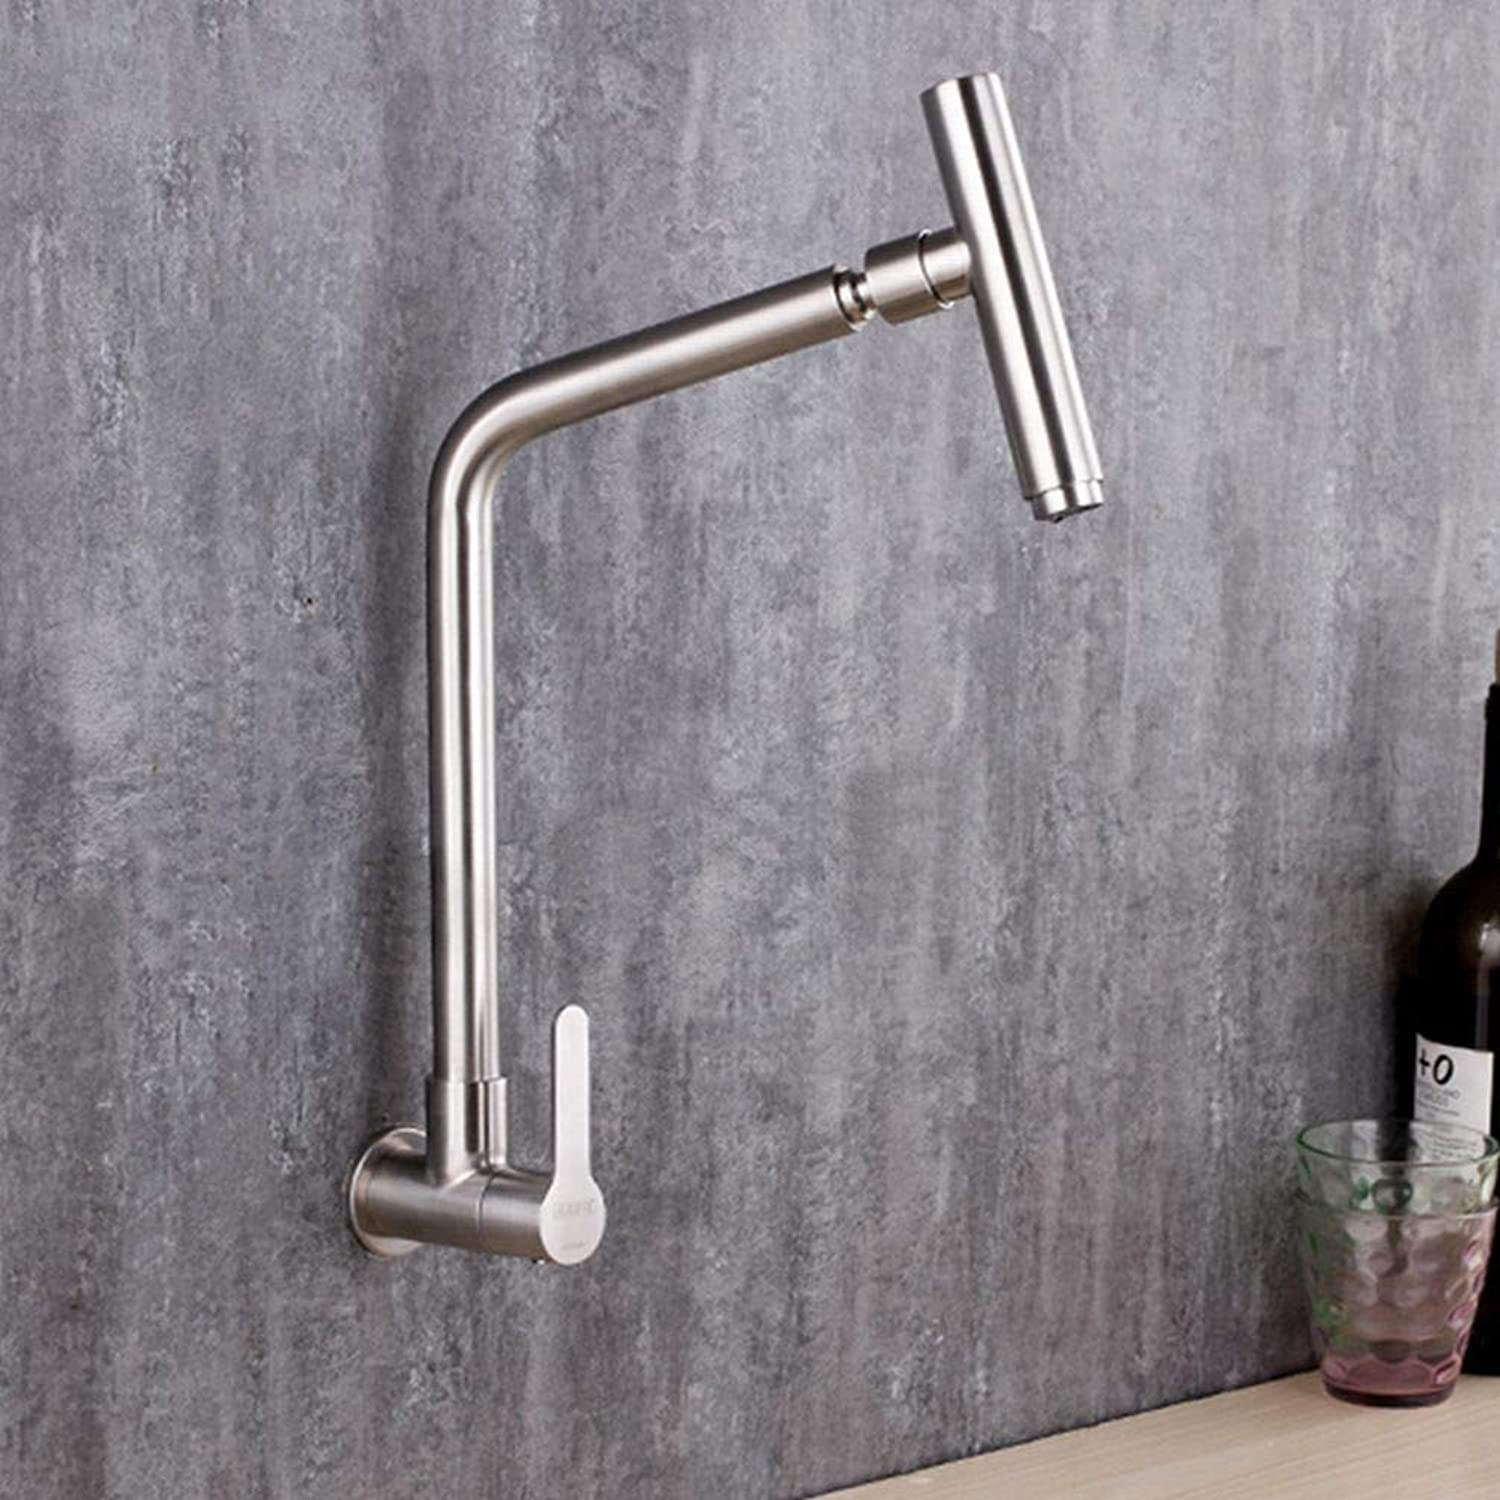 FZHLR 304 Stainless Steel Wall Mounted Kitchen Sink Mixer Single Cold Faucet Brushed Surface Single Cold Water Faucet Brushed